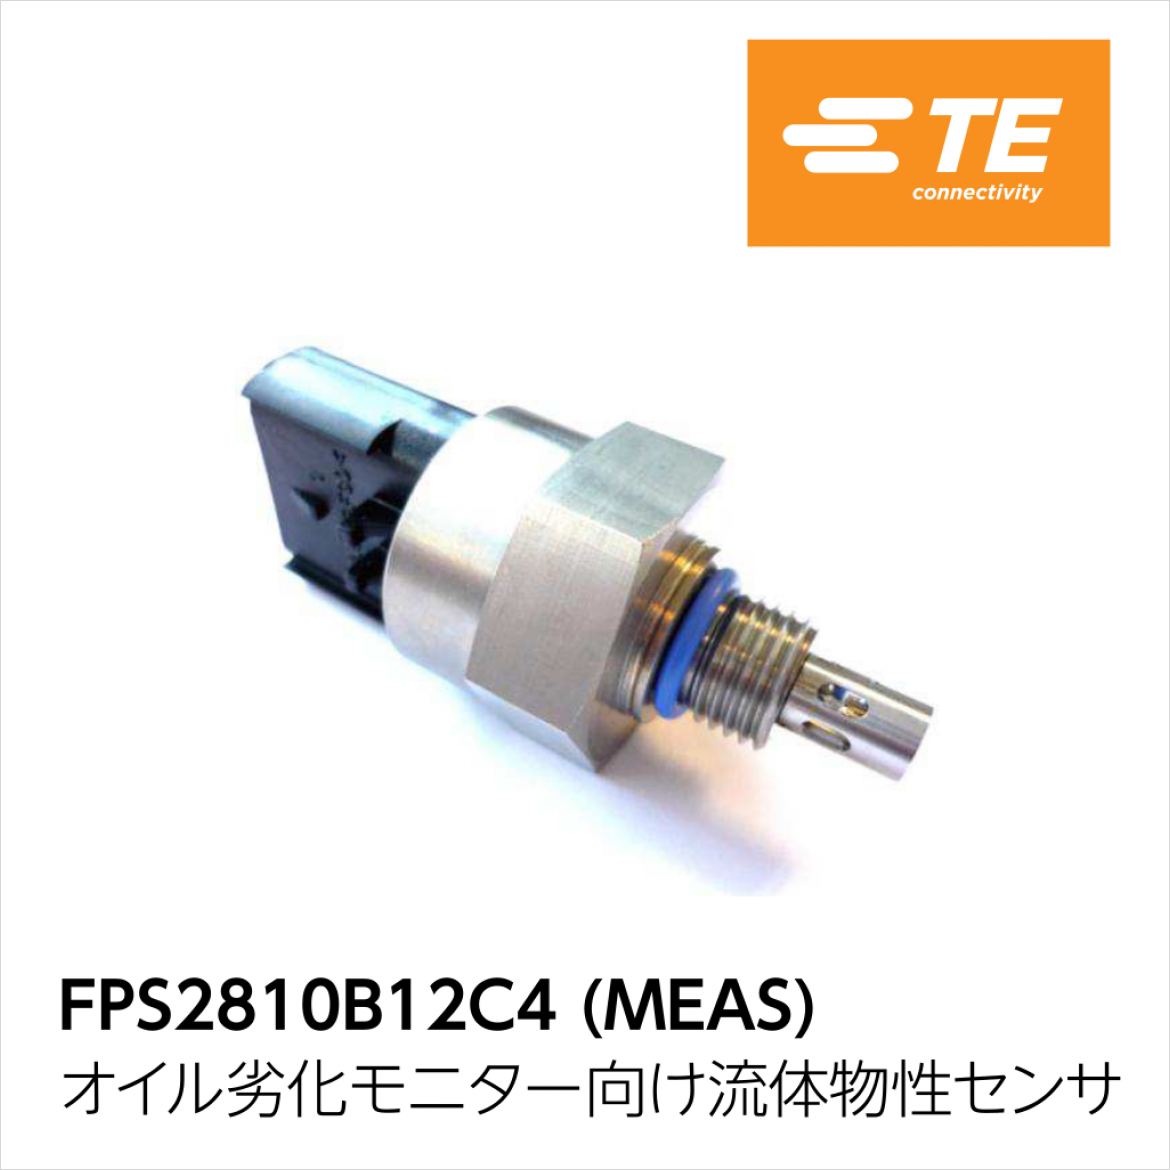 Measurement Specialties 社製流体物性センサ (FPS) FPS2810B12C4